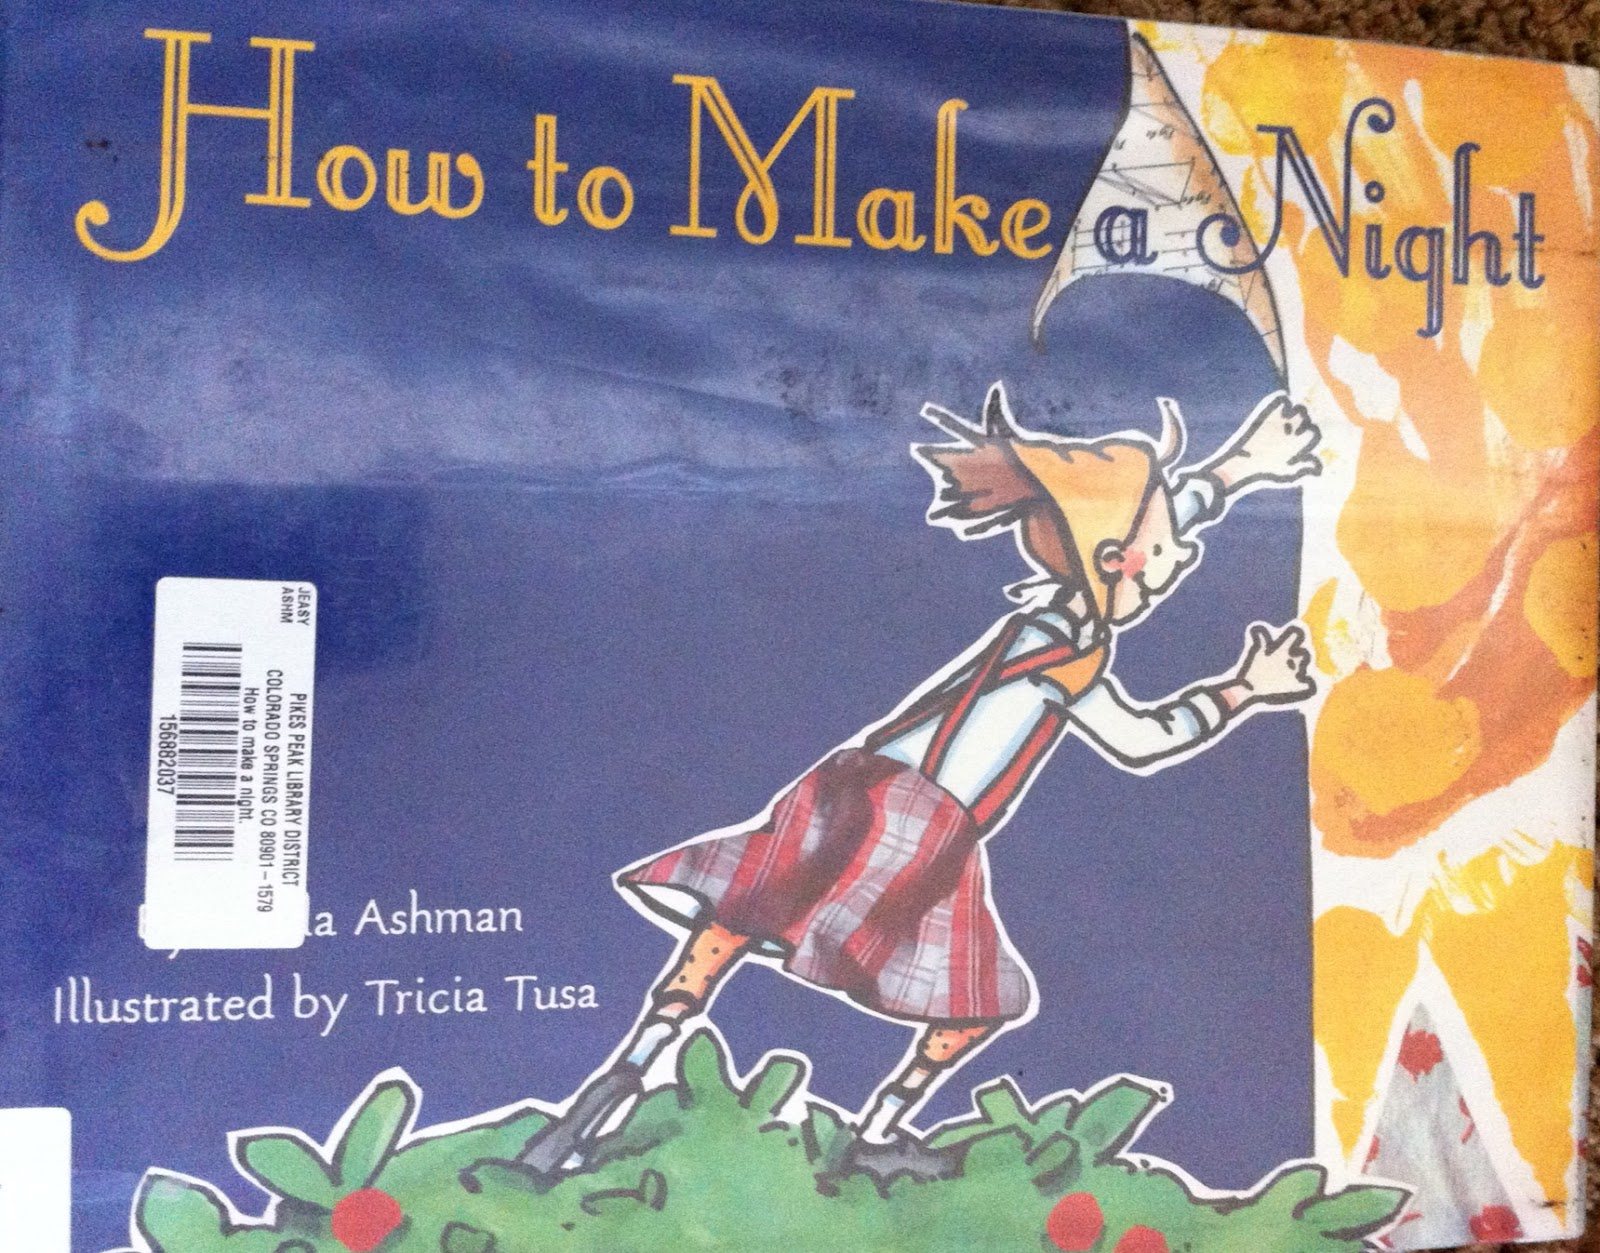 Stacy S Jensen Perfect Picture Book How To Make A Night